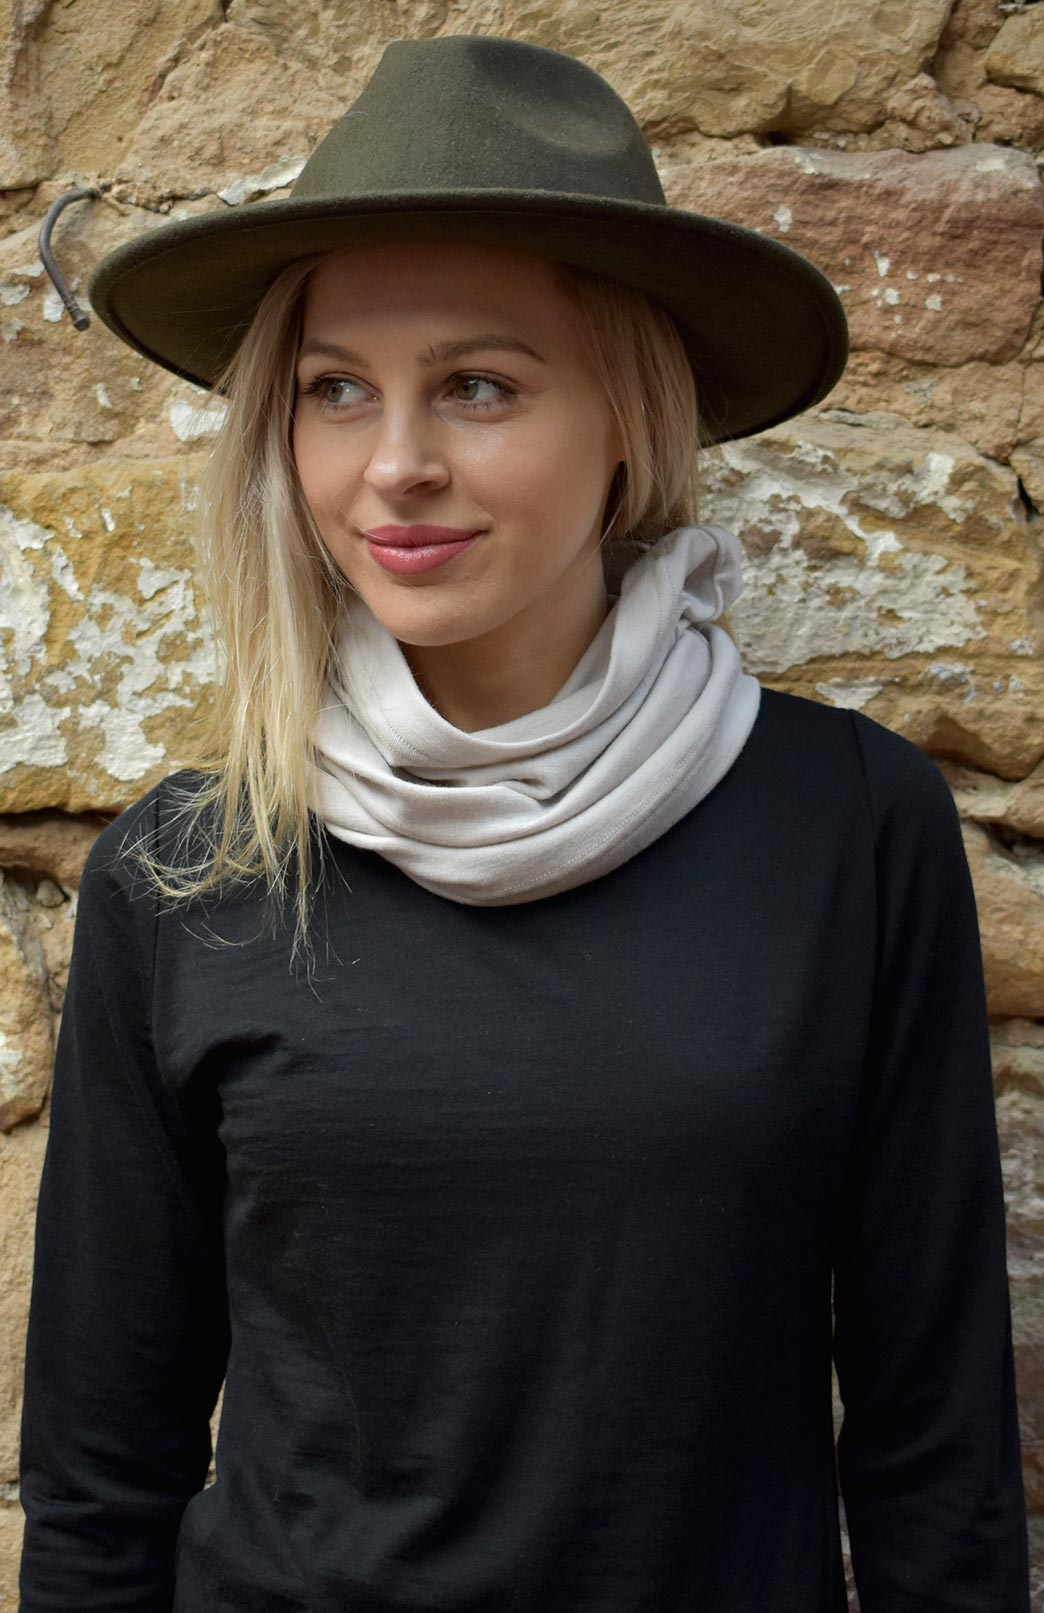 Thermal Neck Warmer - Merino Wool Multi Purpose Thermal Neck Warmer, Snood, Buff - Smitten Merino Tasmania Australia